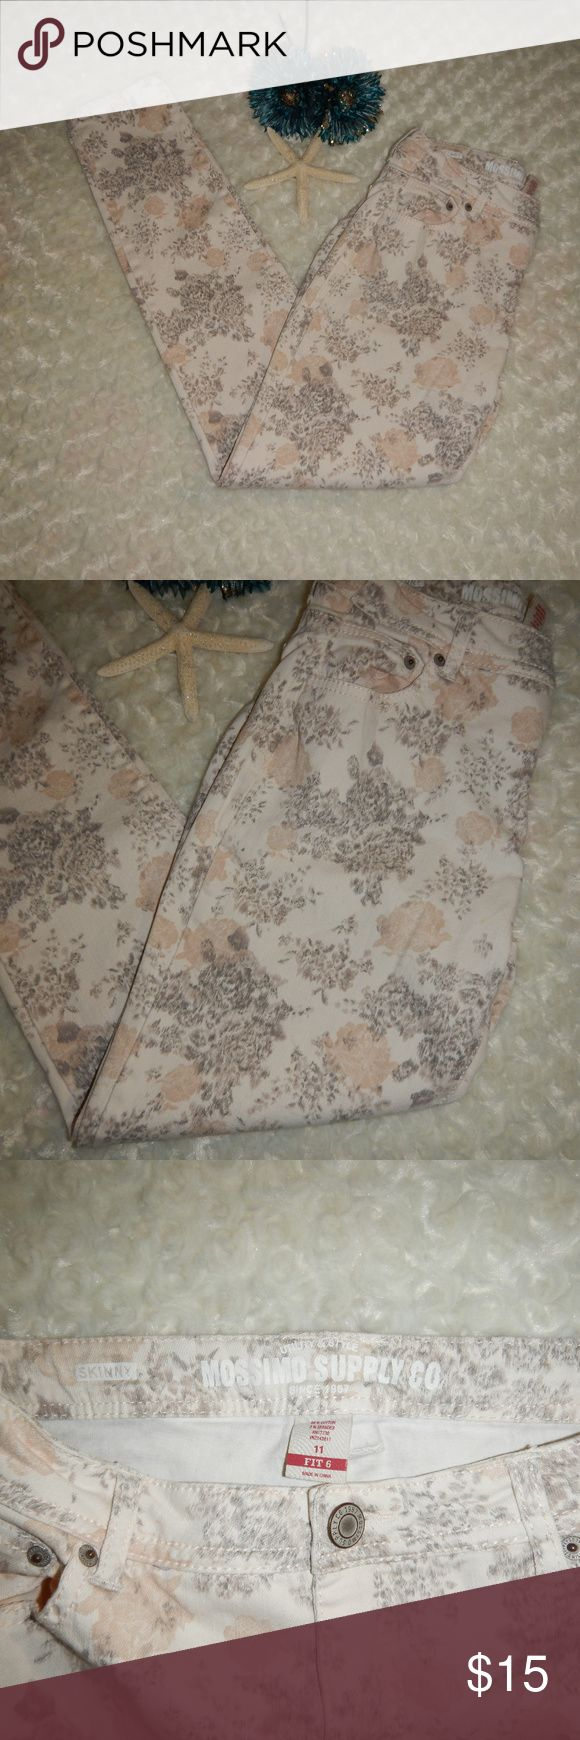 """Mossimo Skinny Floral Jeans Mossimo Supply Co. Womans Beige Floral Skinny Jeans Size 11 Fit 6 Waist: 14.5"""" flat Inseam: 30"""" Rise: 8"""" Mossimo Supply Co. Jeans"""